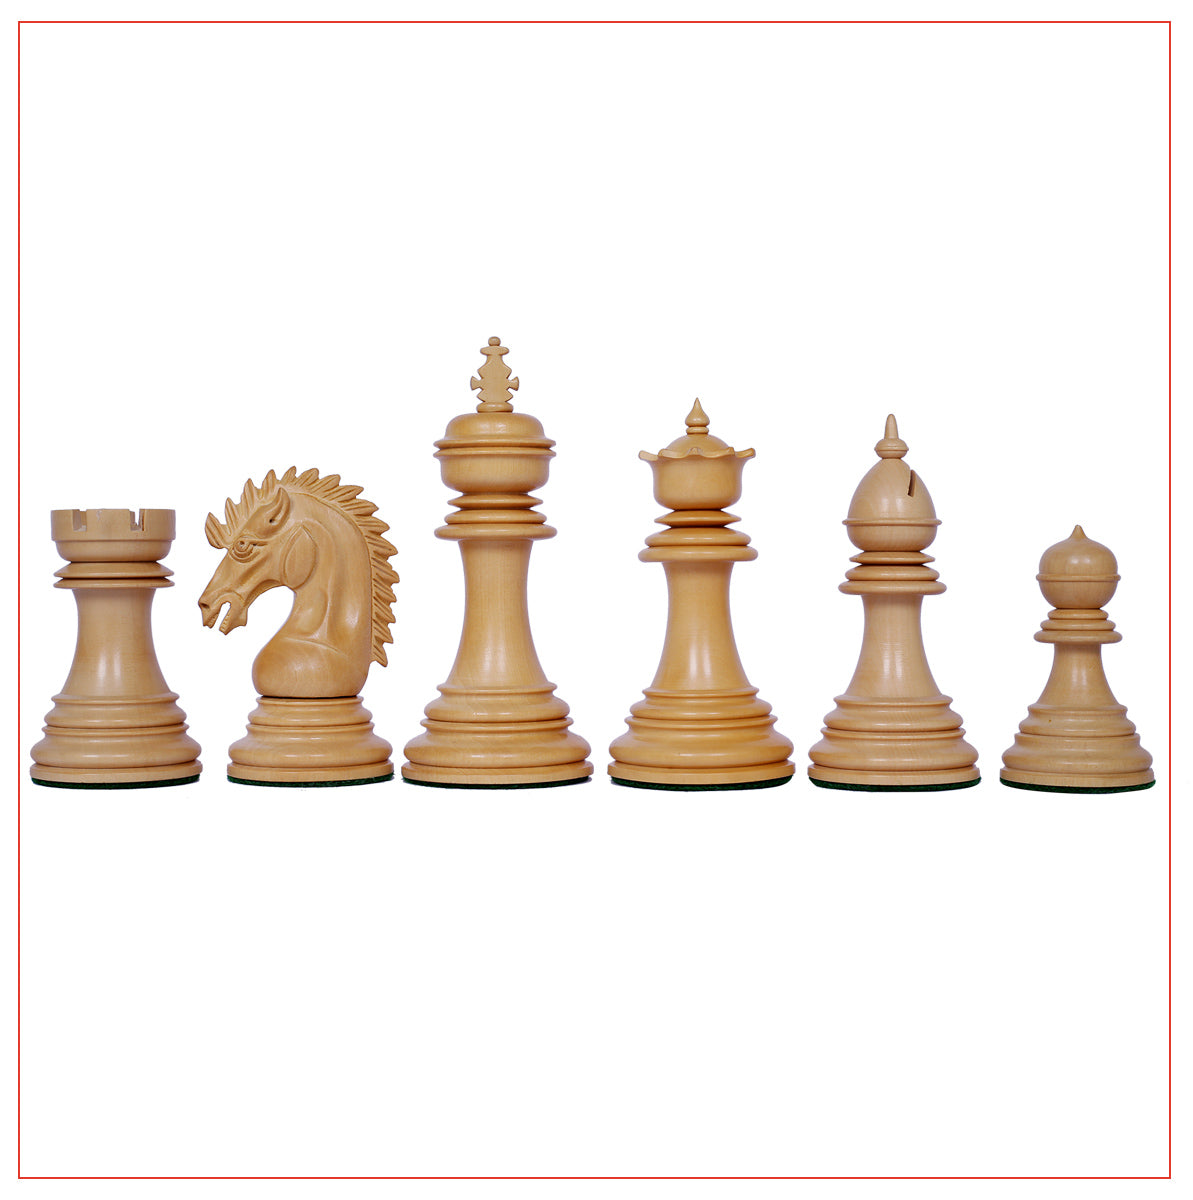 "Thebes Series Premium Staunton 4.4"" Chess Set in Padouk wood"